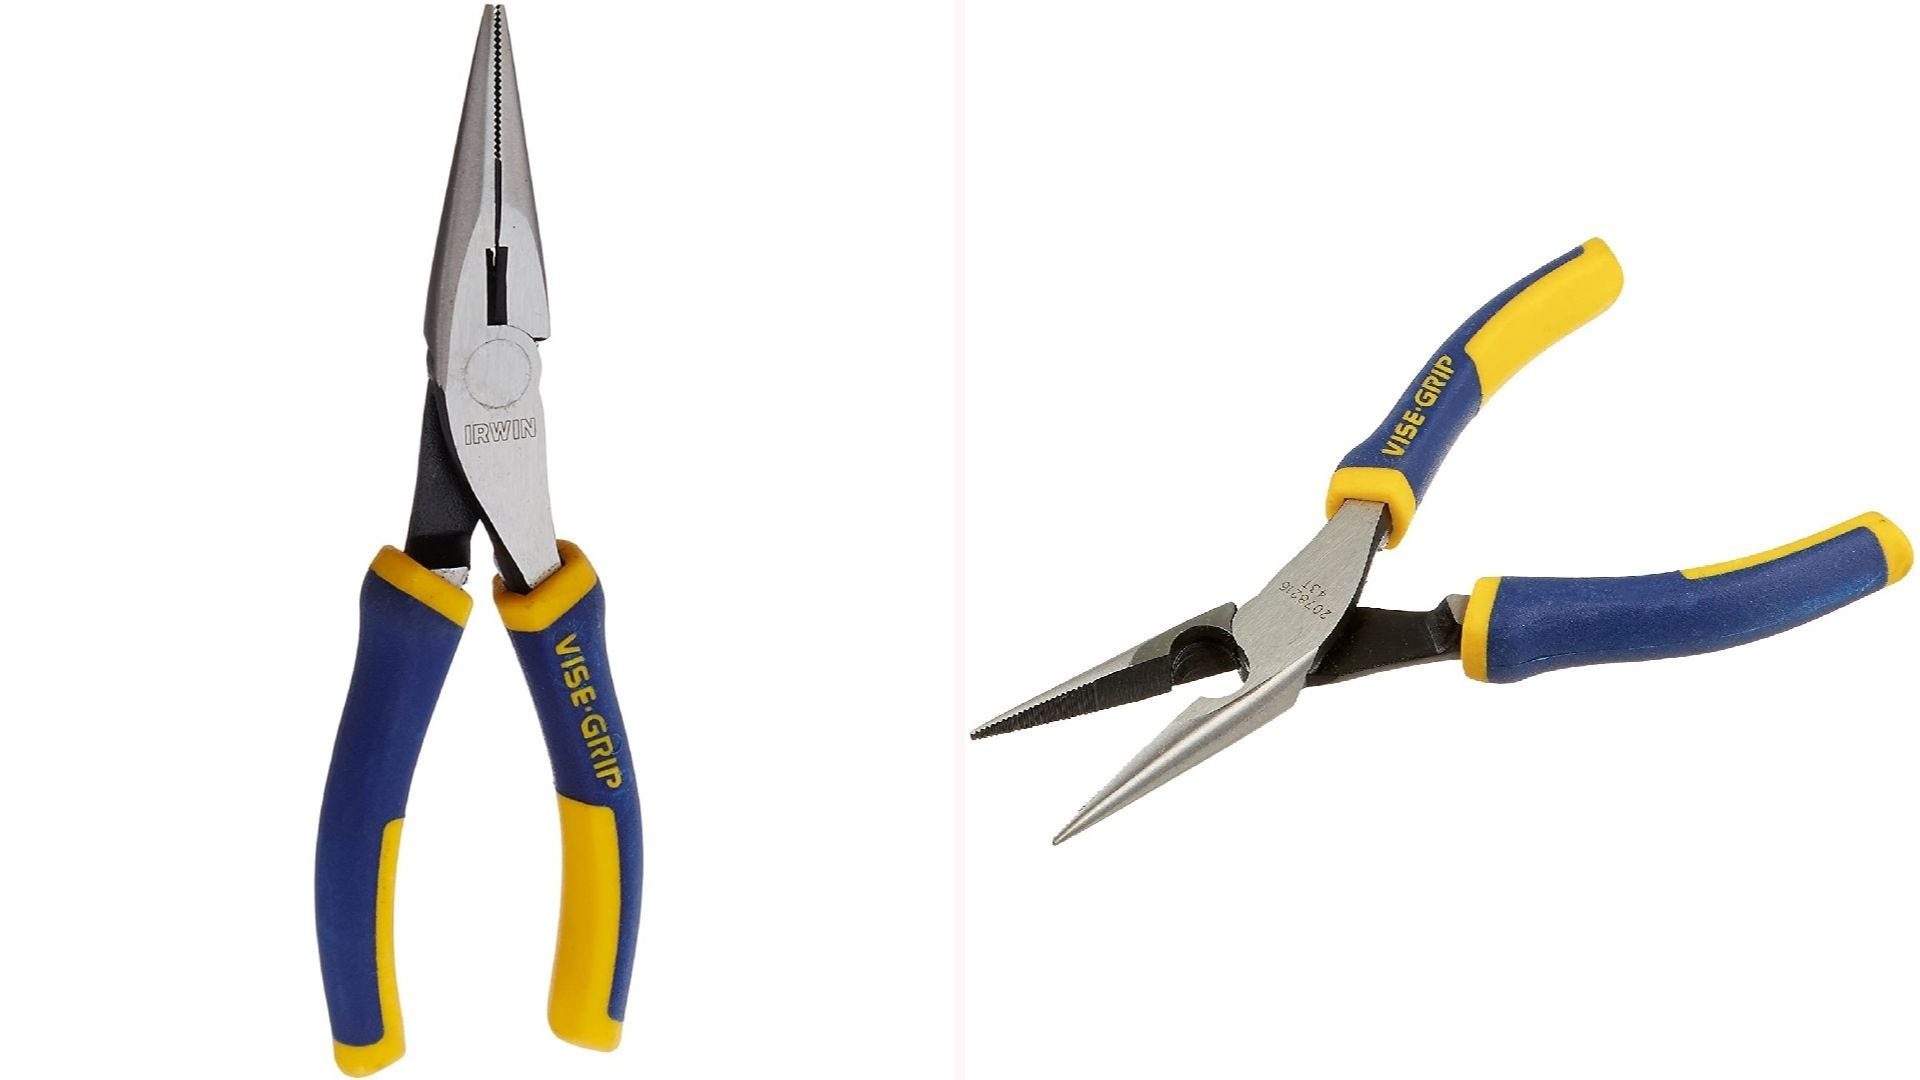 On the left, a front view of needle-nose pliers in its closed position. On the right, a side view of needle-nosed pliers in an open position.